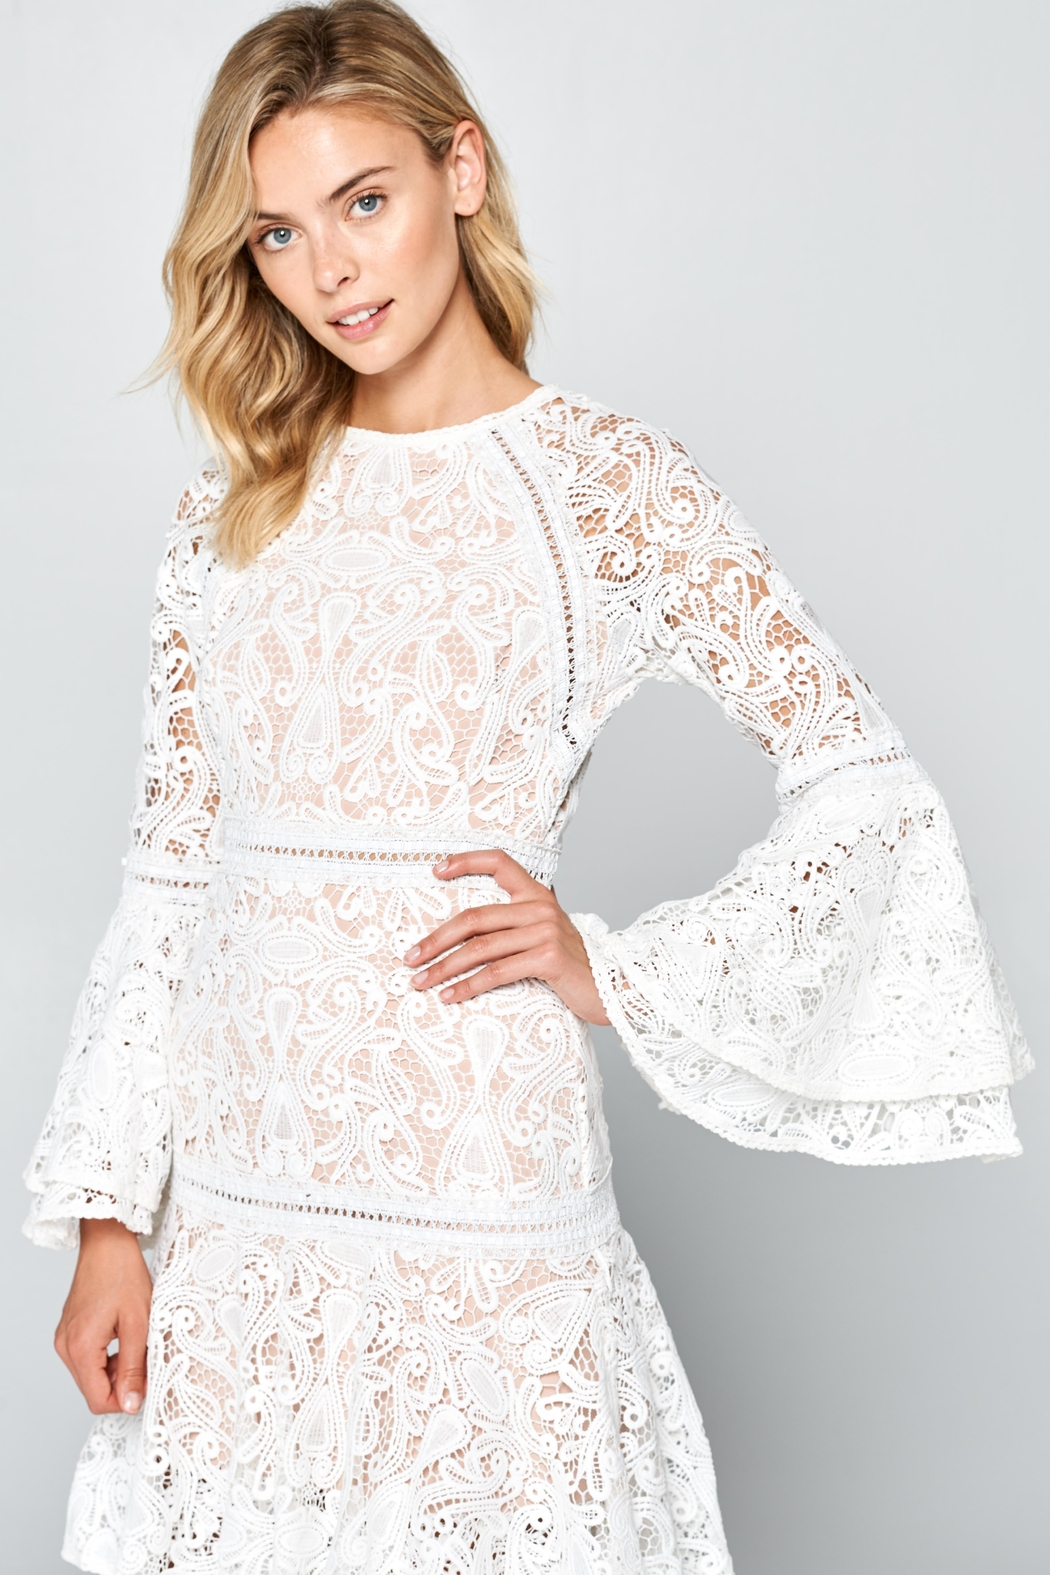 7ab5ffe4726b Racine All-White Lace Maxi-Dress from California by Racine Love ...